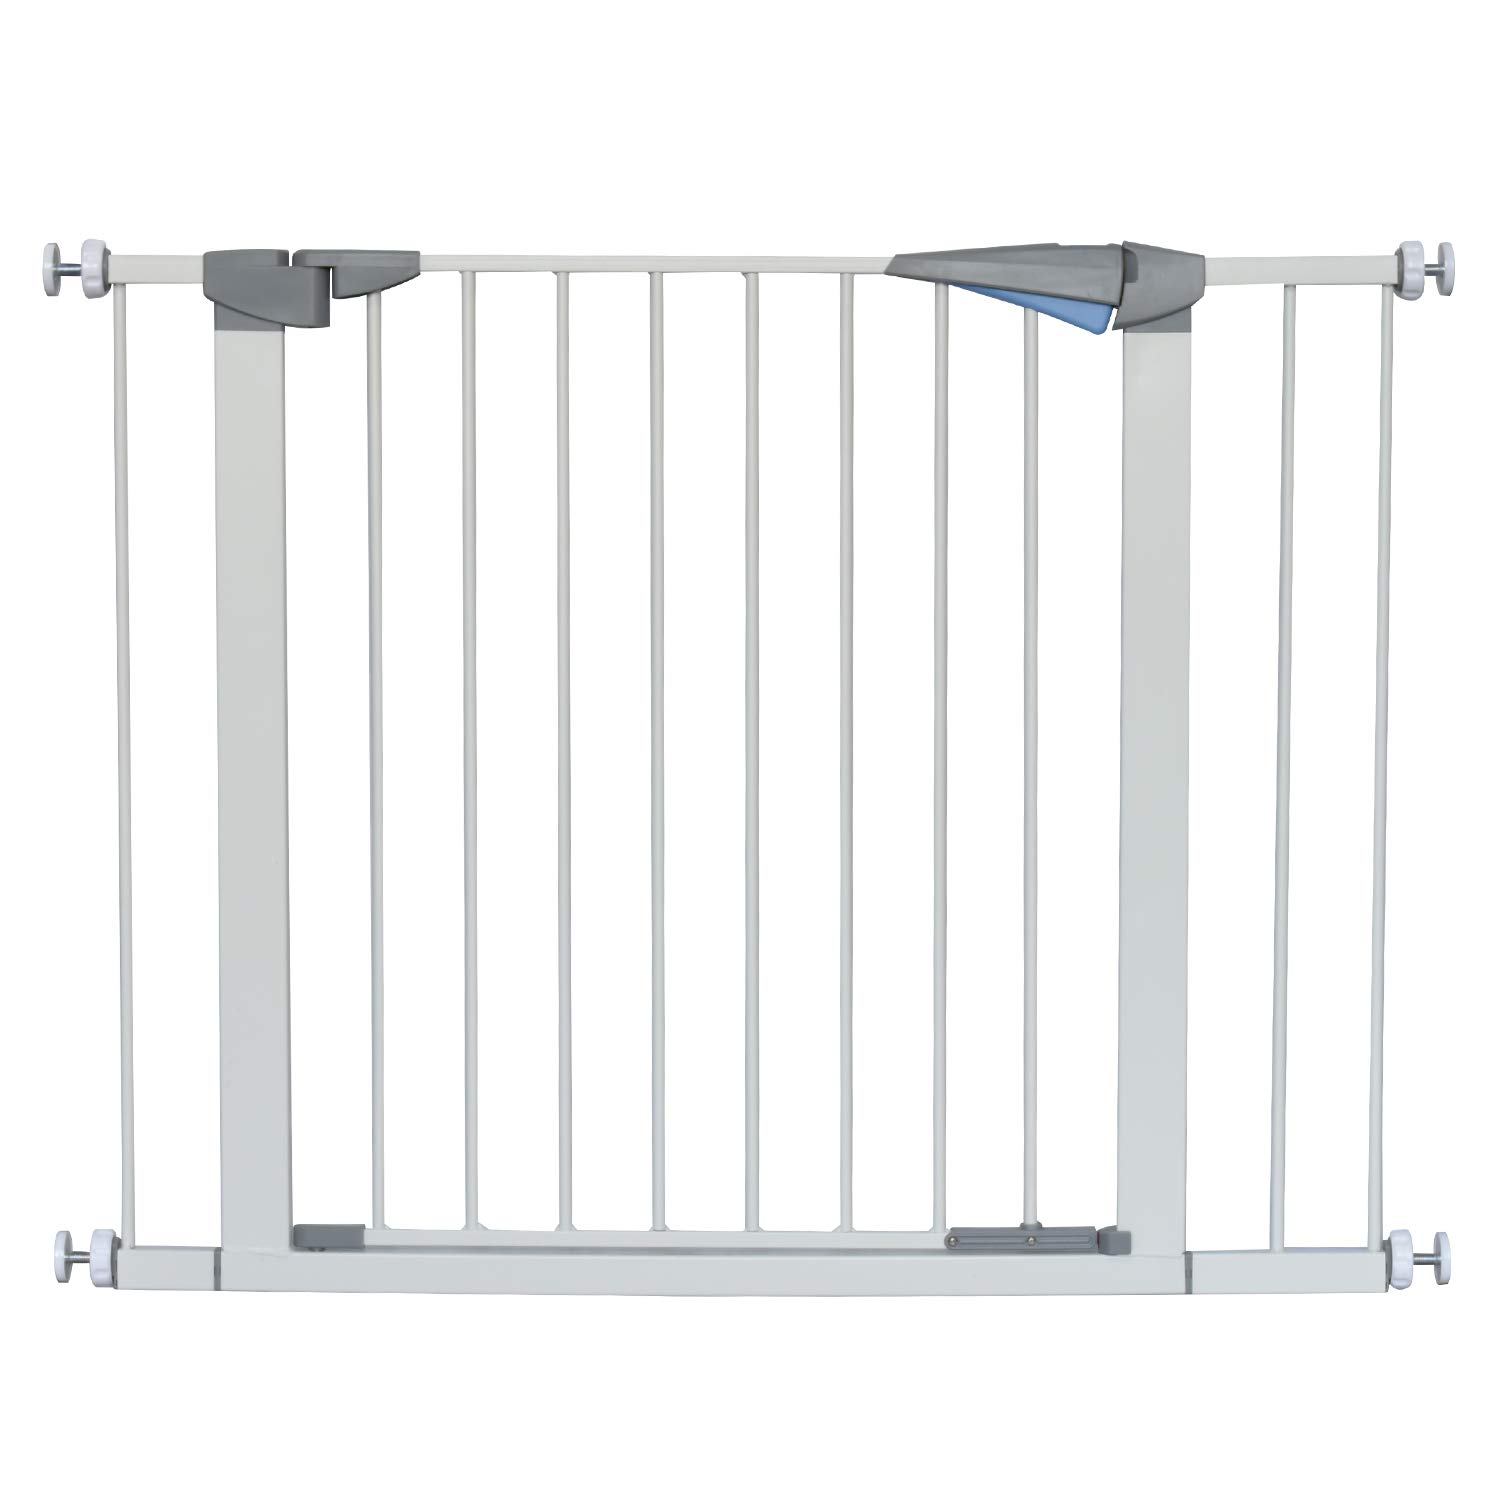 LEMKA Walk Thru Gate,Auto-Close Safety Gate Metal Expandable Pet Gate Includes 2.8'' & 5.5'' Extension for Pressure Mount for Stairs,Doorways,Fits Spaces Between 31'' to 42'' Wide 30'' High